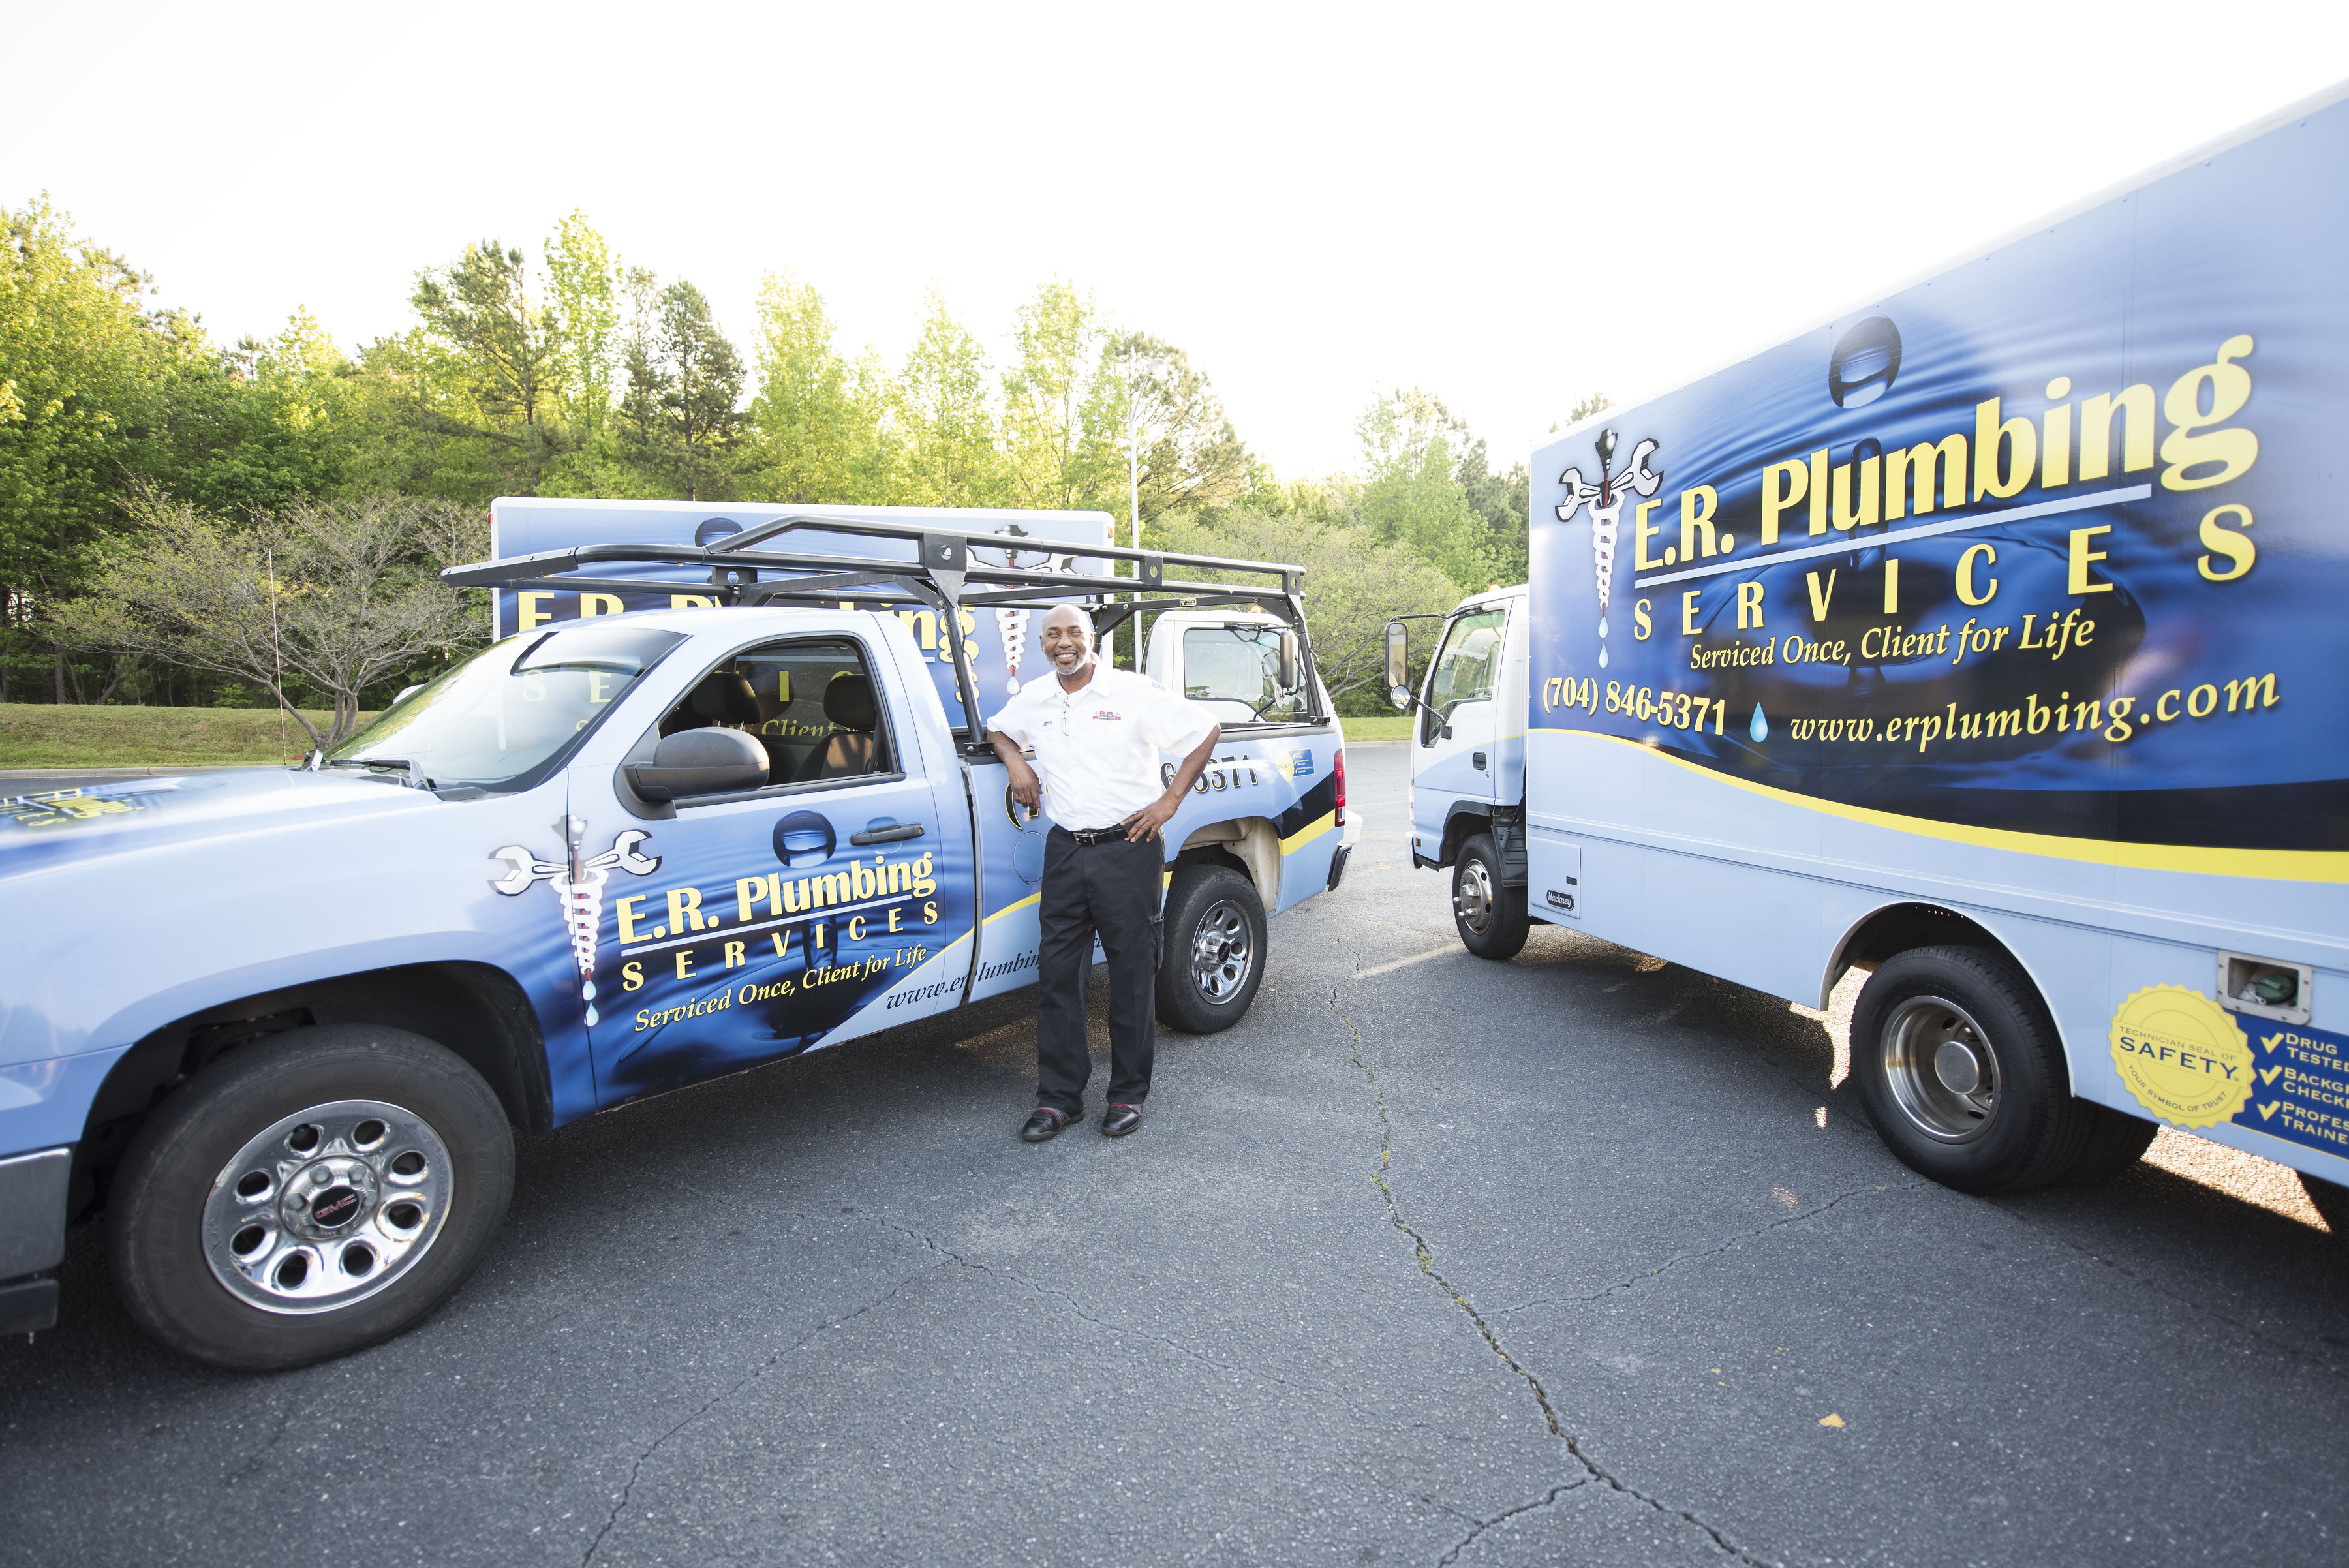 Charlotte nc plumber, Charlotte plumbing service, Charlotte hot water tankless,